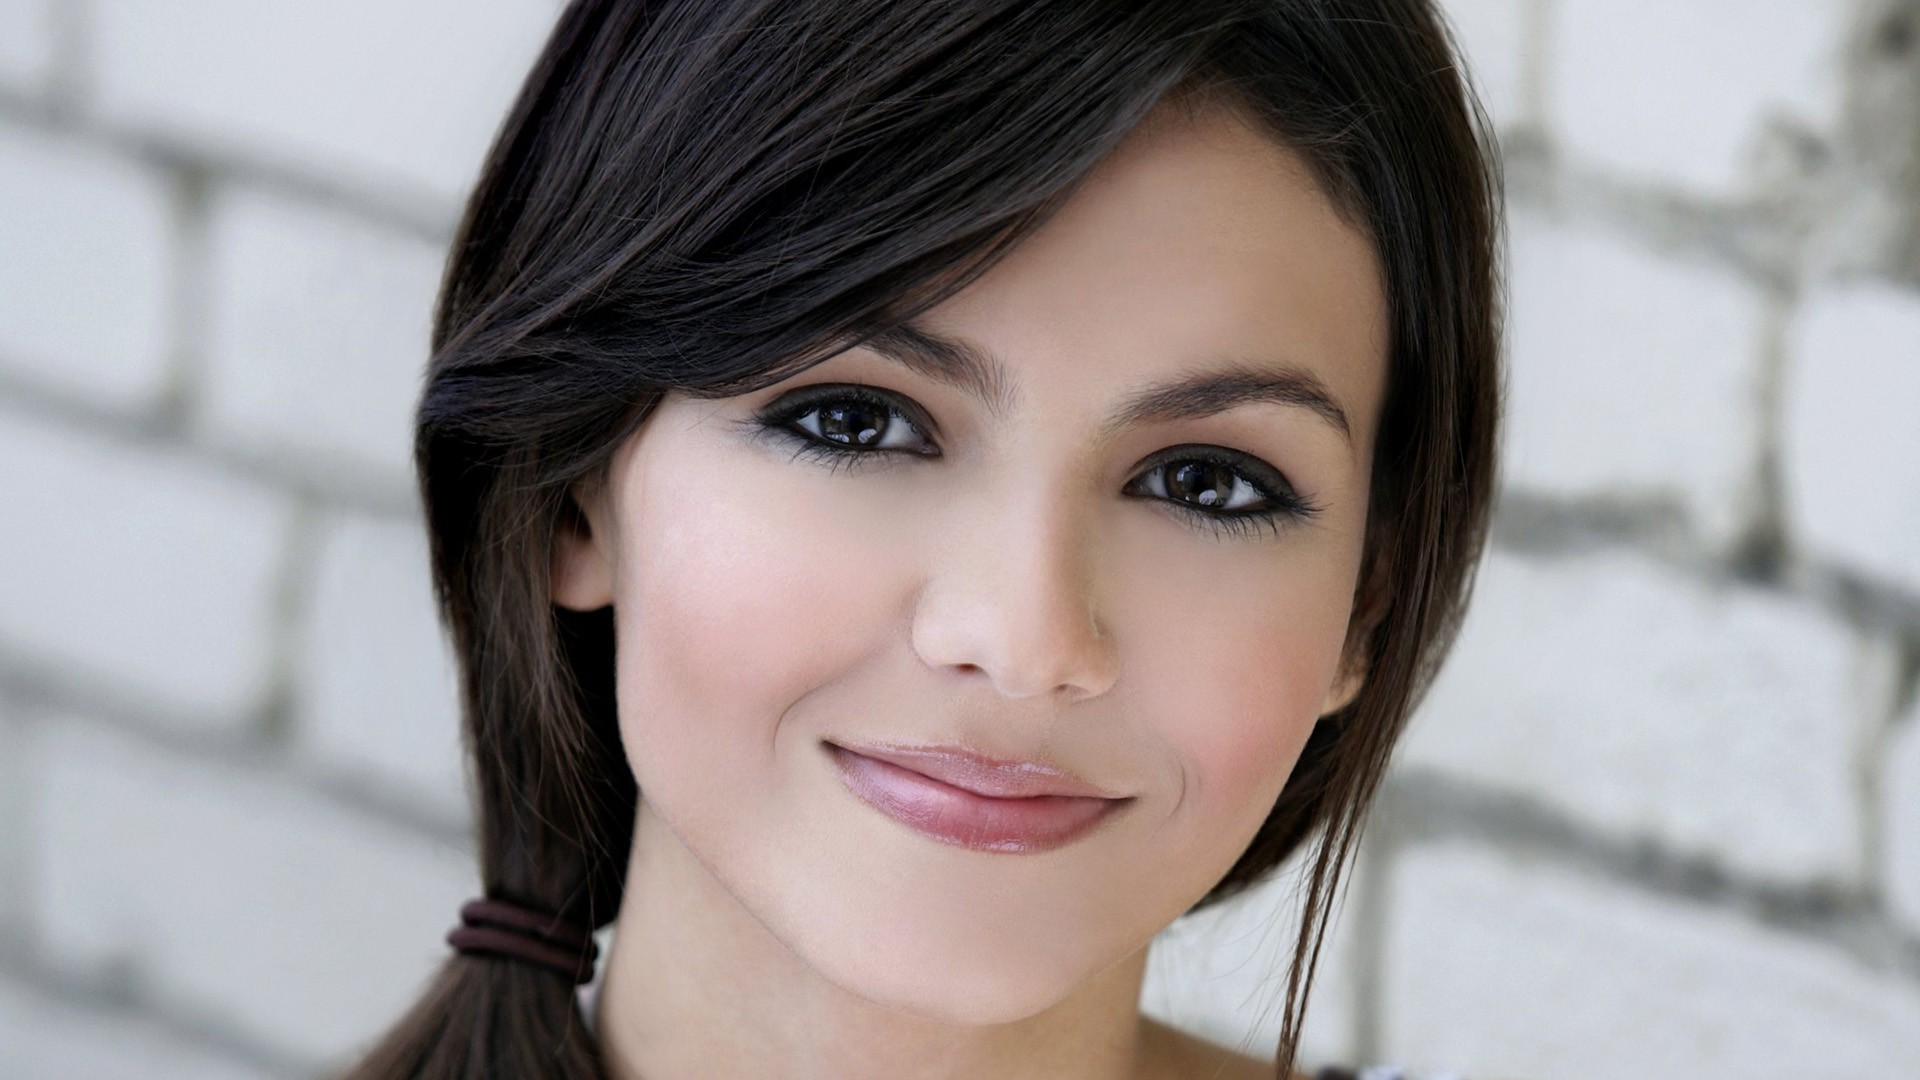 desktop victoria justice mobile free background smile face pictures hd